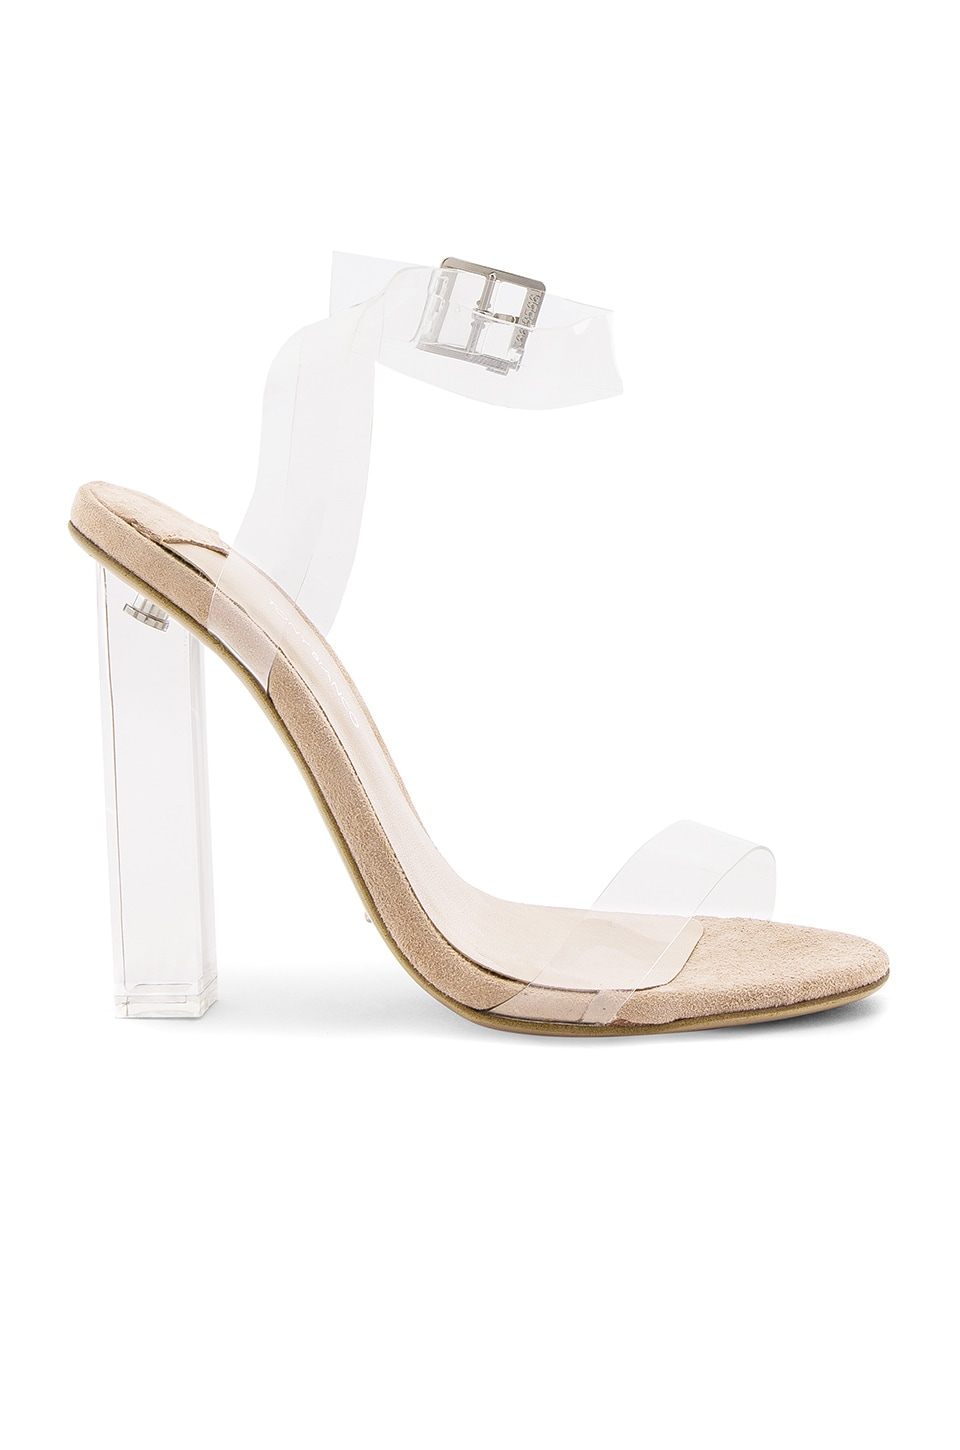 Tony Bianco Kiki Heel in Clear Vynalite & Blush